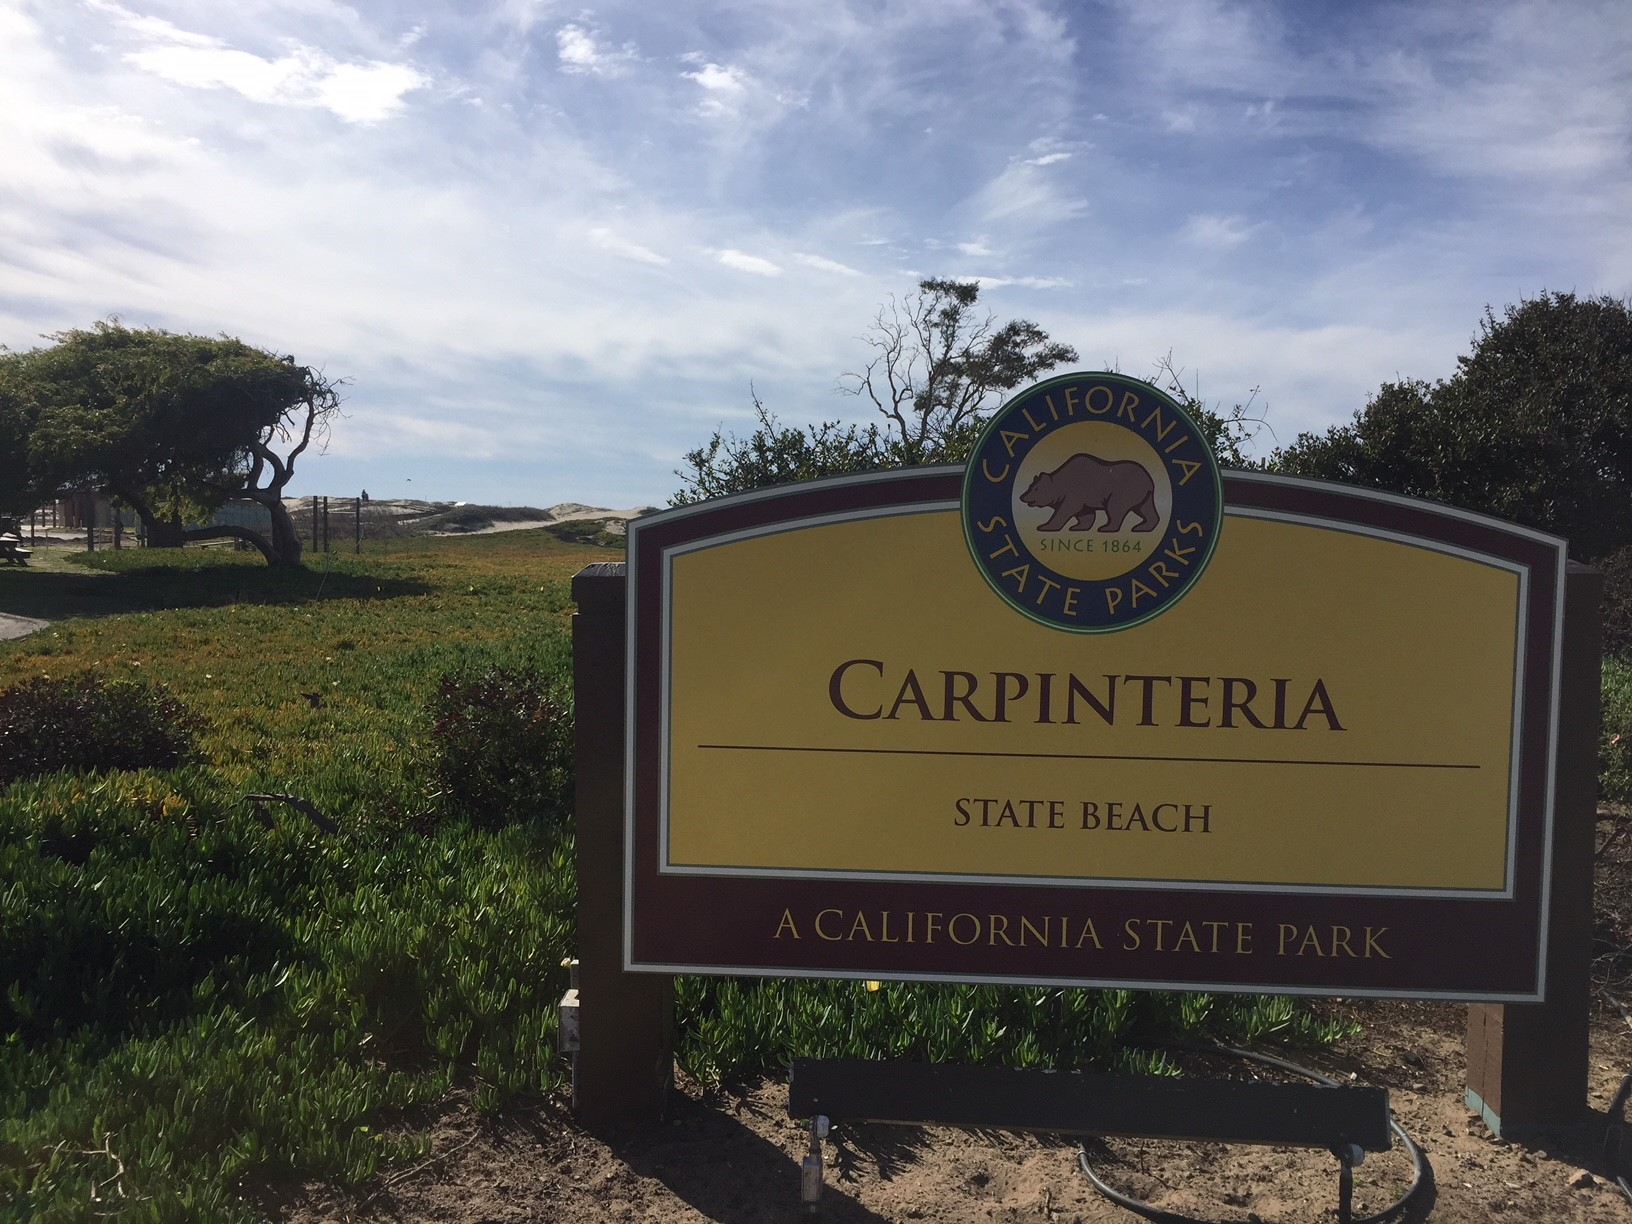 Image from Carpinteria SB